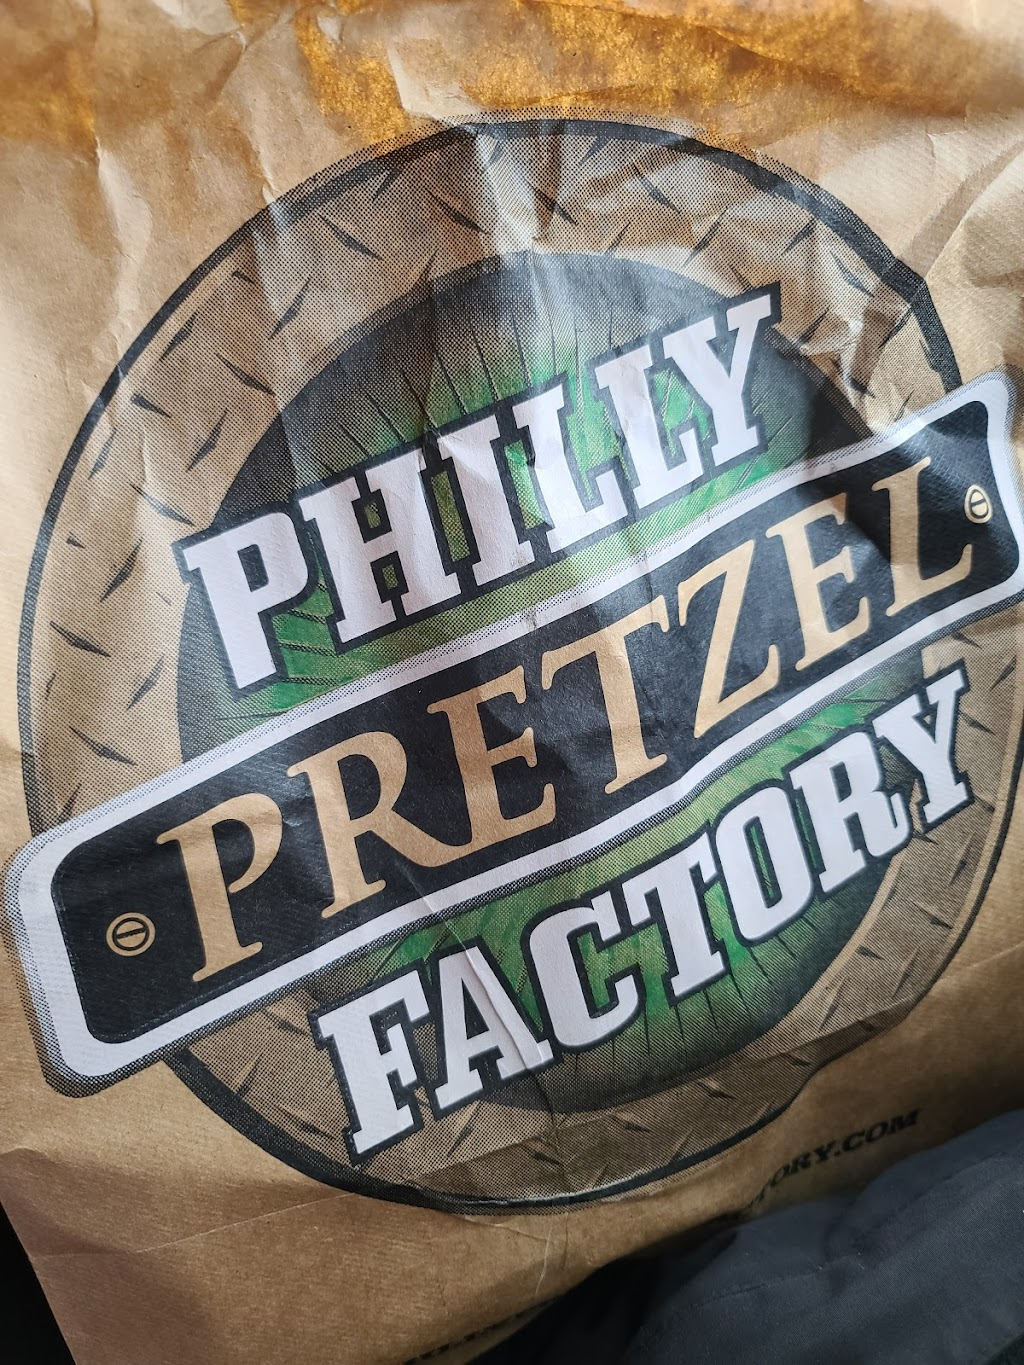 Philly Pretzel Factory | bakery | 373 Benner Pike, State College, PA 16801, USA | 8148612150 OR +1 814-861-2150